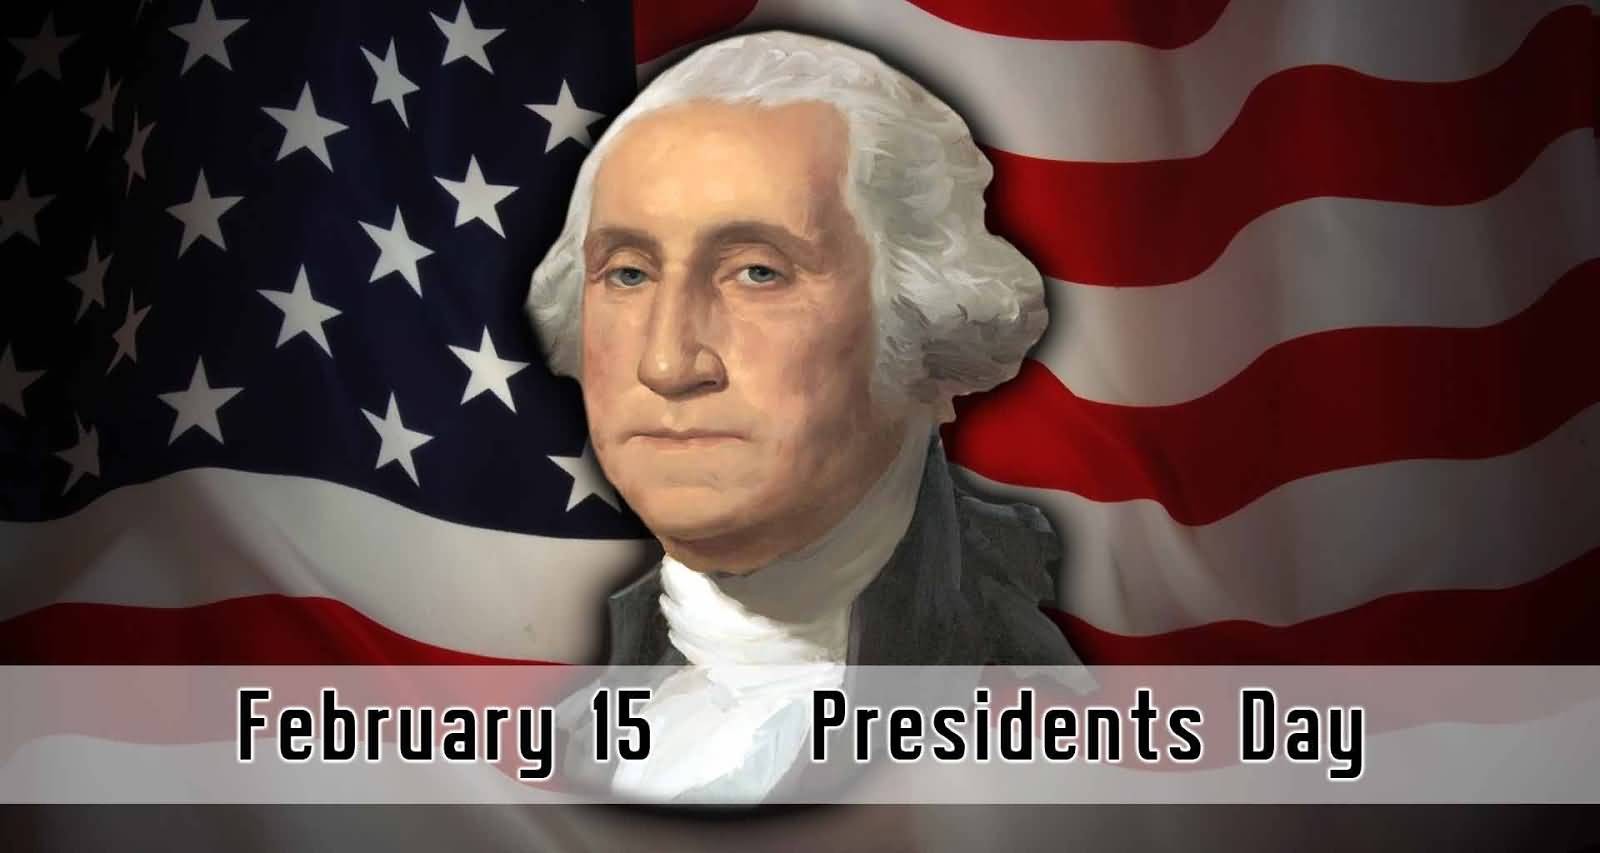 28 President's Day Images